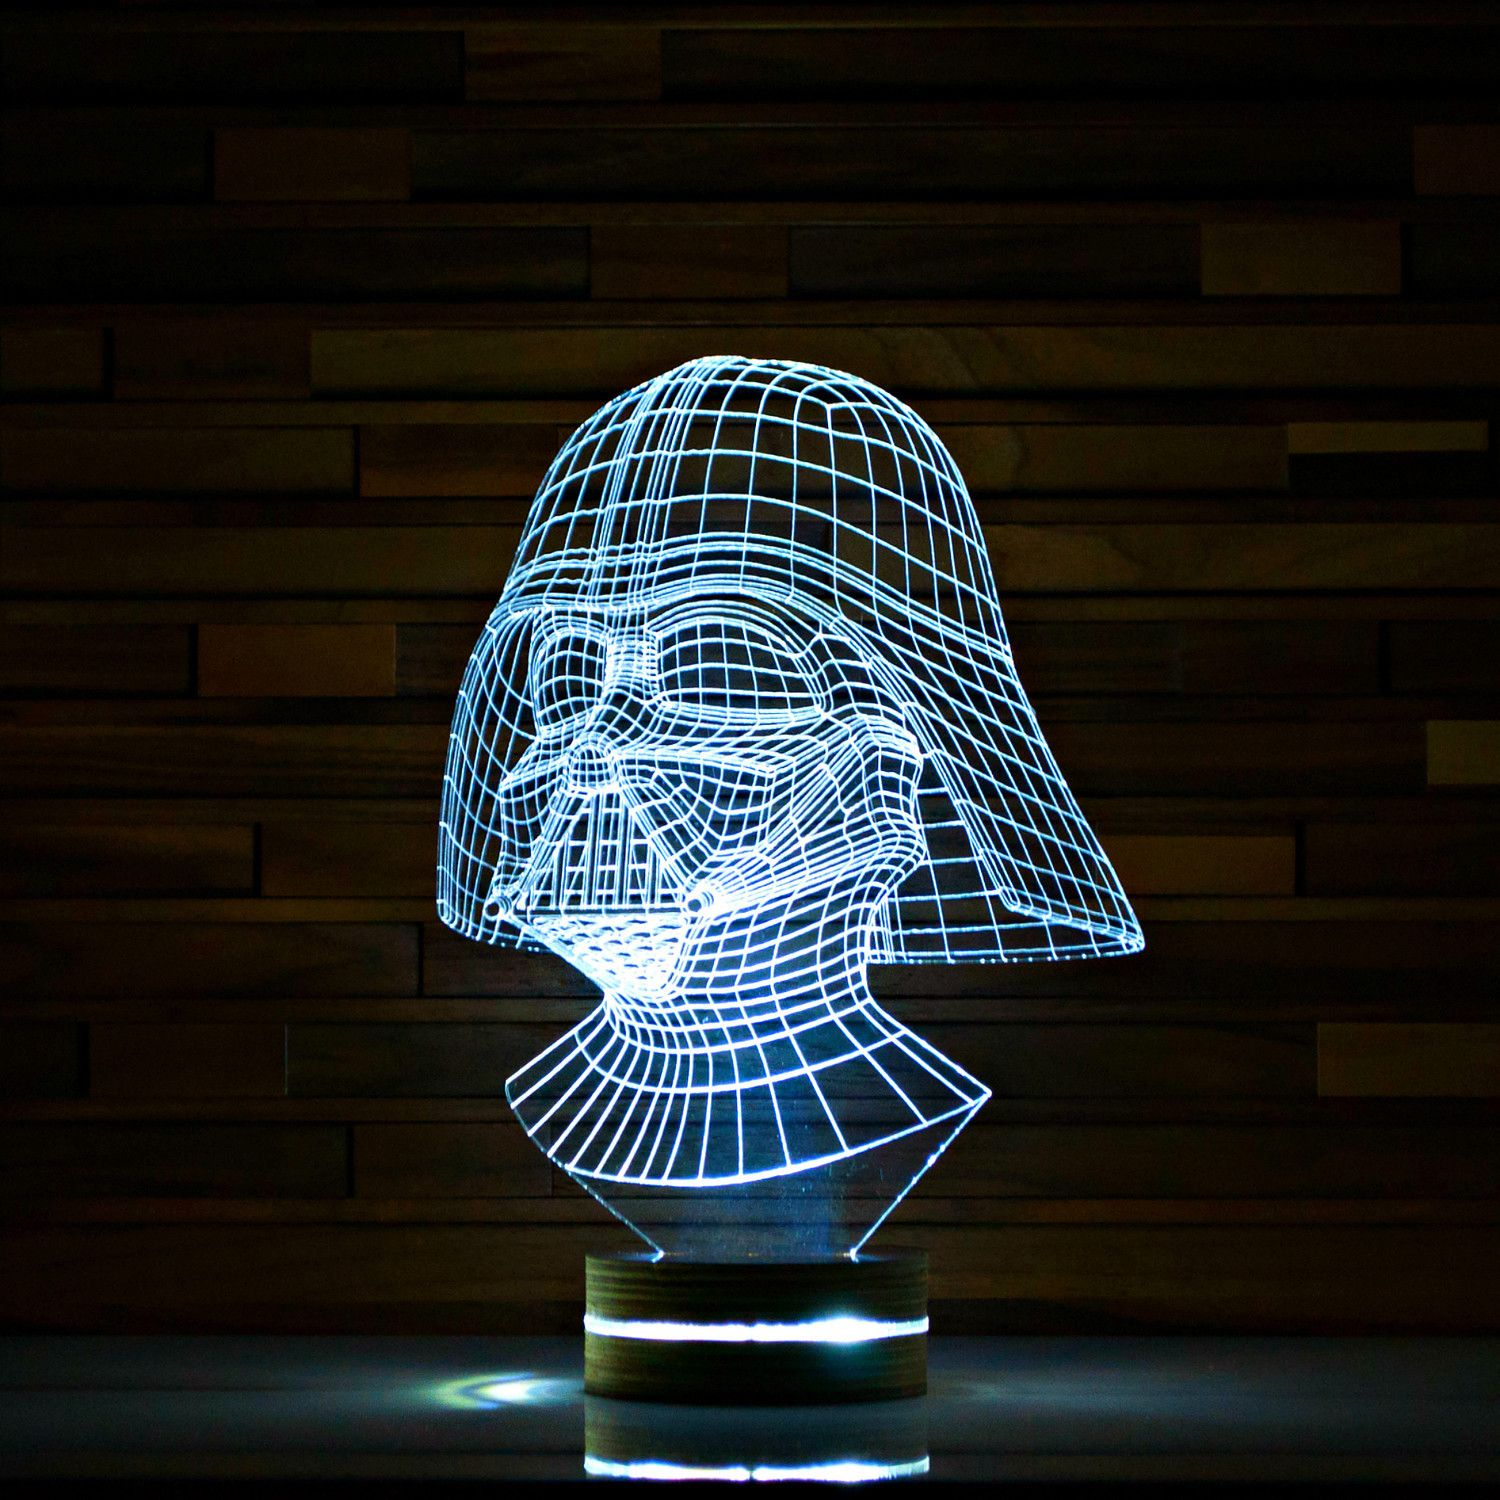 Darth Vader 3d Led Lamp Design Pinterest Star Wars Led And